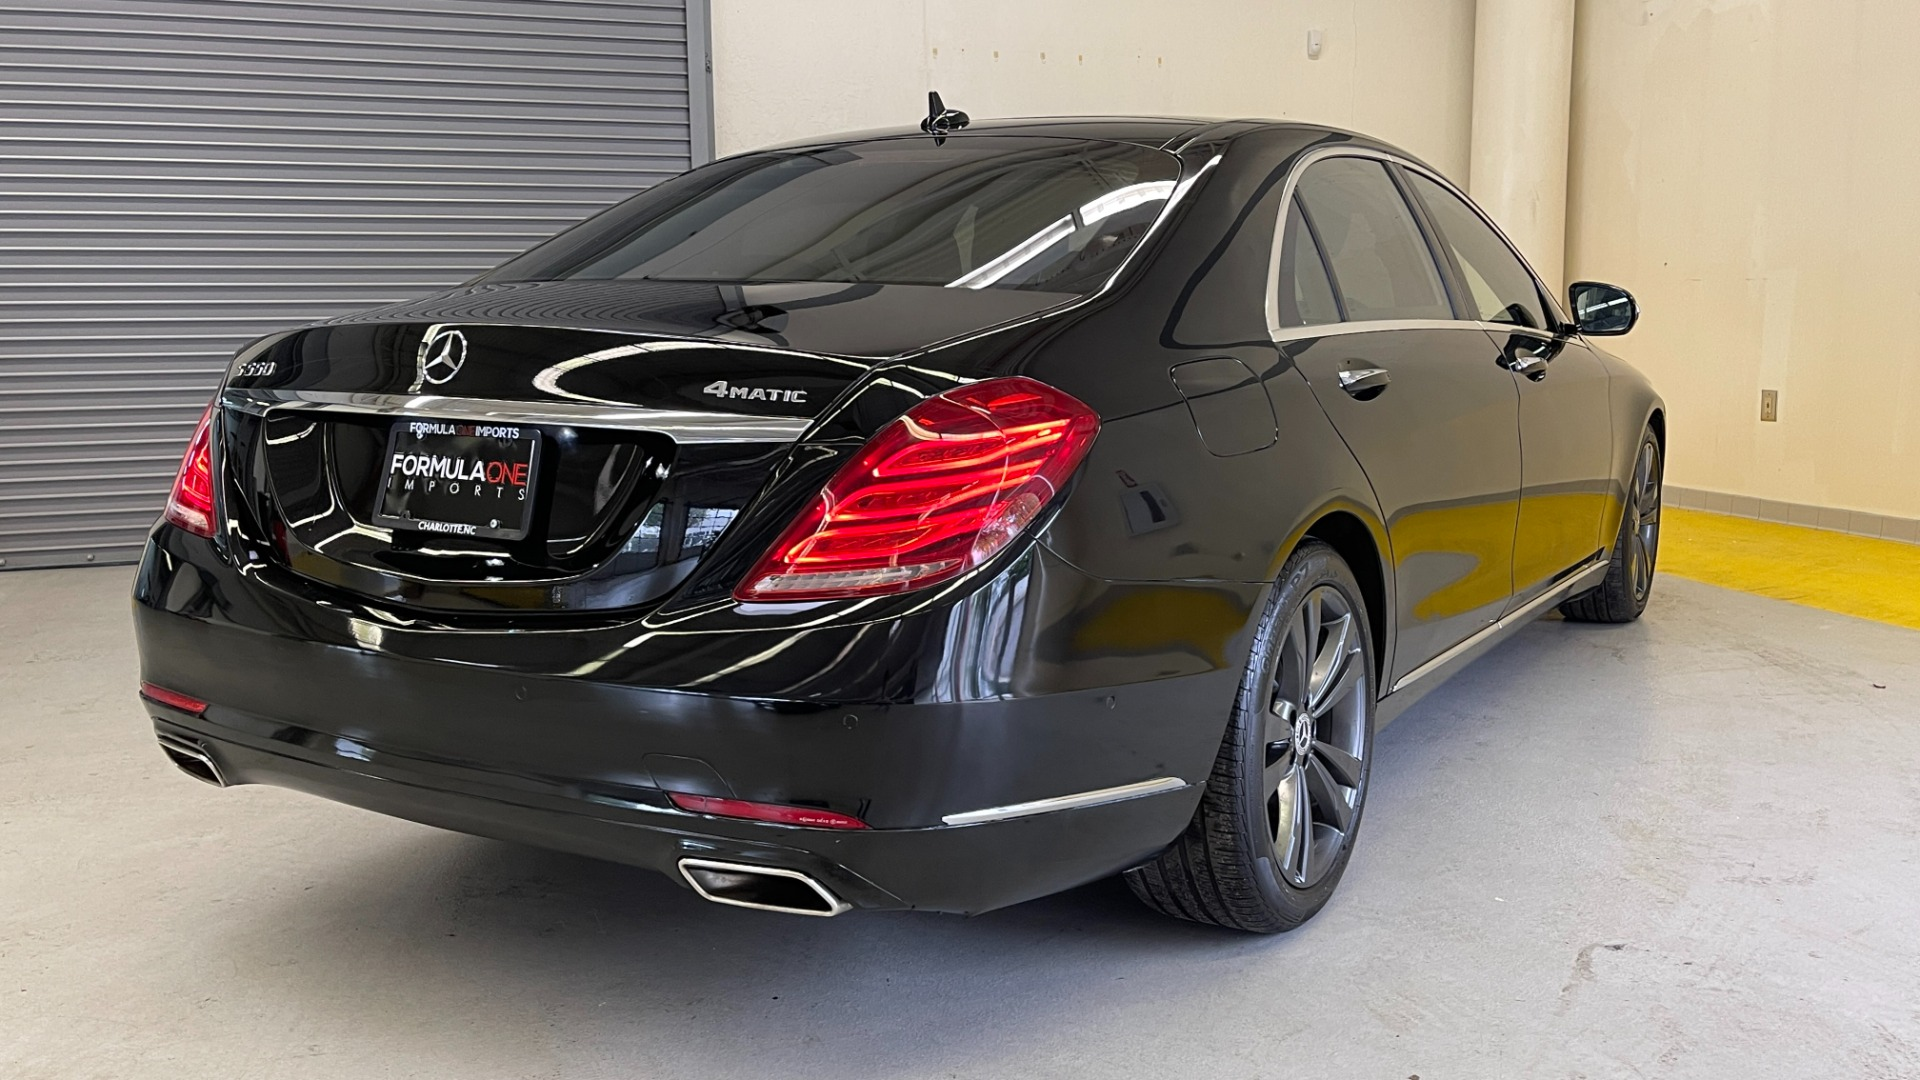 Used 2017 Mercedes-Benz S-CLASS S 550 4MATIC PREMIUM / NAV / BURMESTER / SUNROOF / REARVIEW for sale $58,995 at Formula Imports in Charlotte NC 28227 6